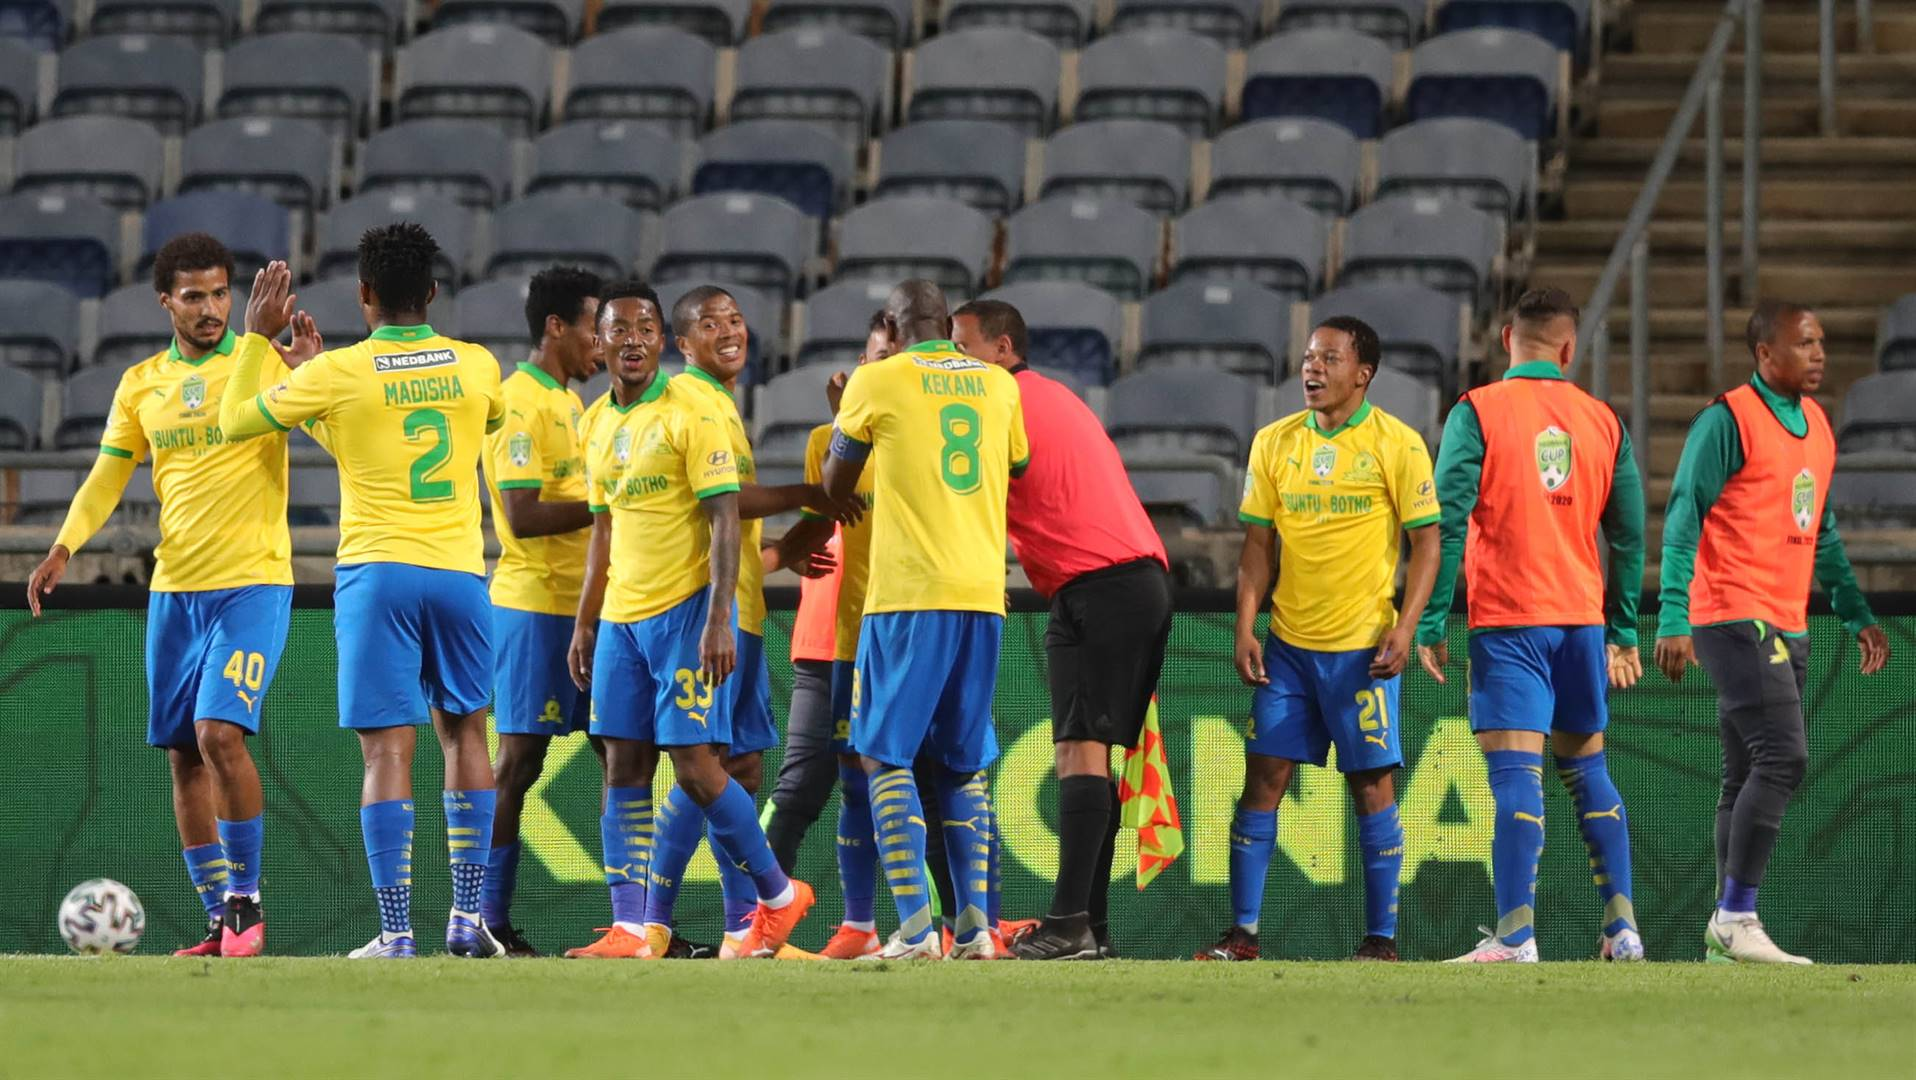 Mamelodi Sundowns brought the curtain down on the season with a win over Bloemfontein Celtic in the Nedbank Cup final last Saturday. Picture: Samuel Shivambu / BackpagePix